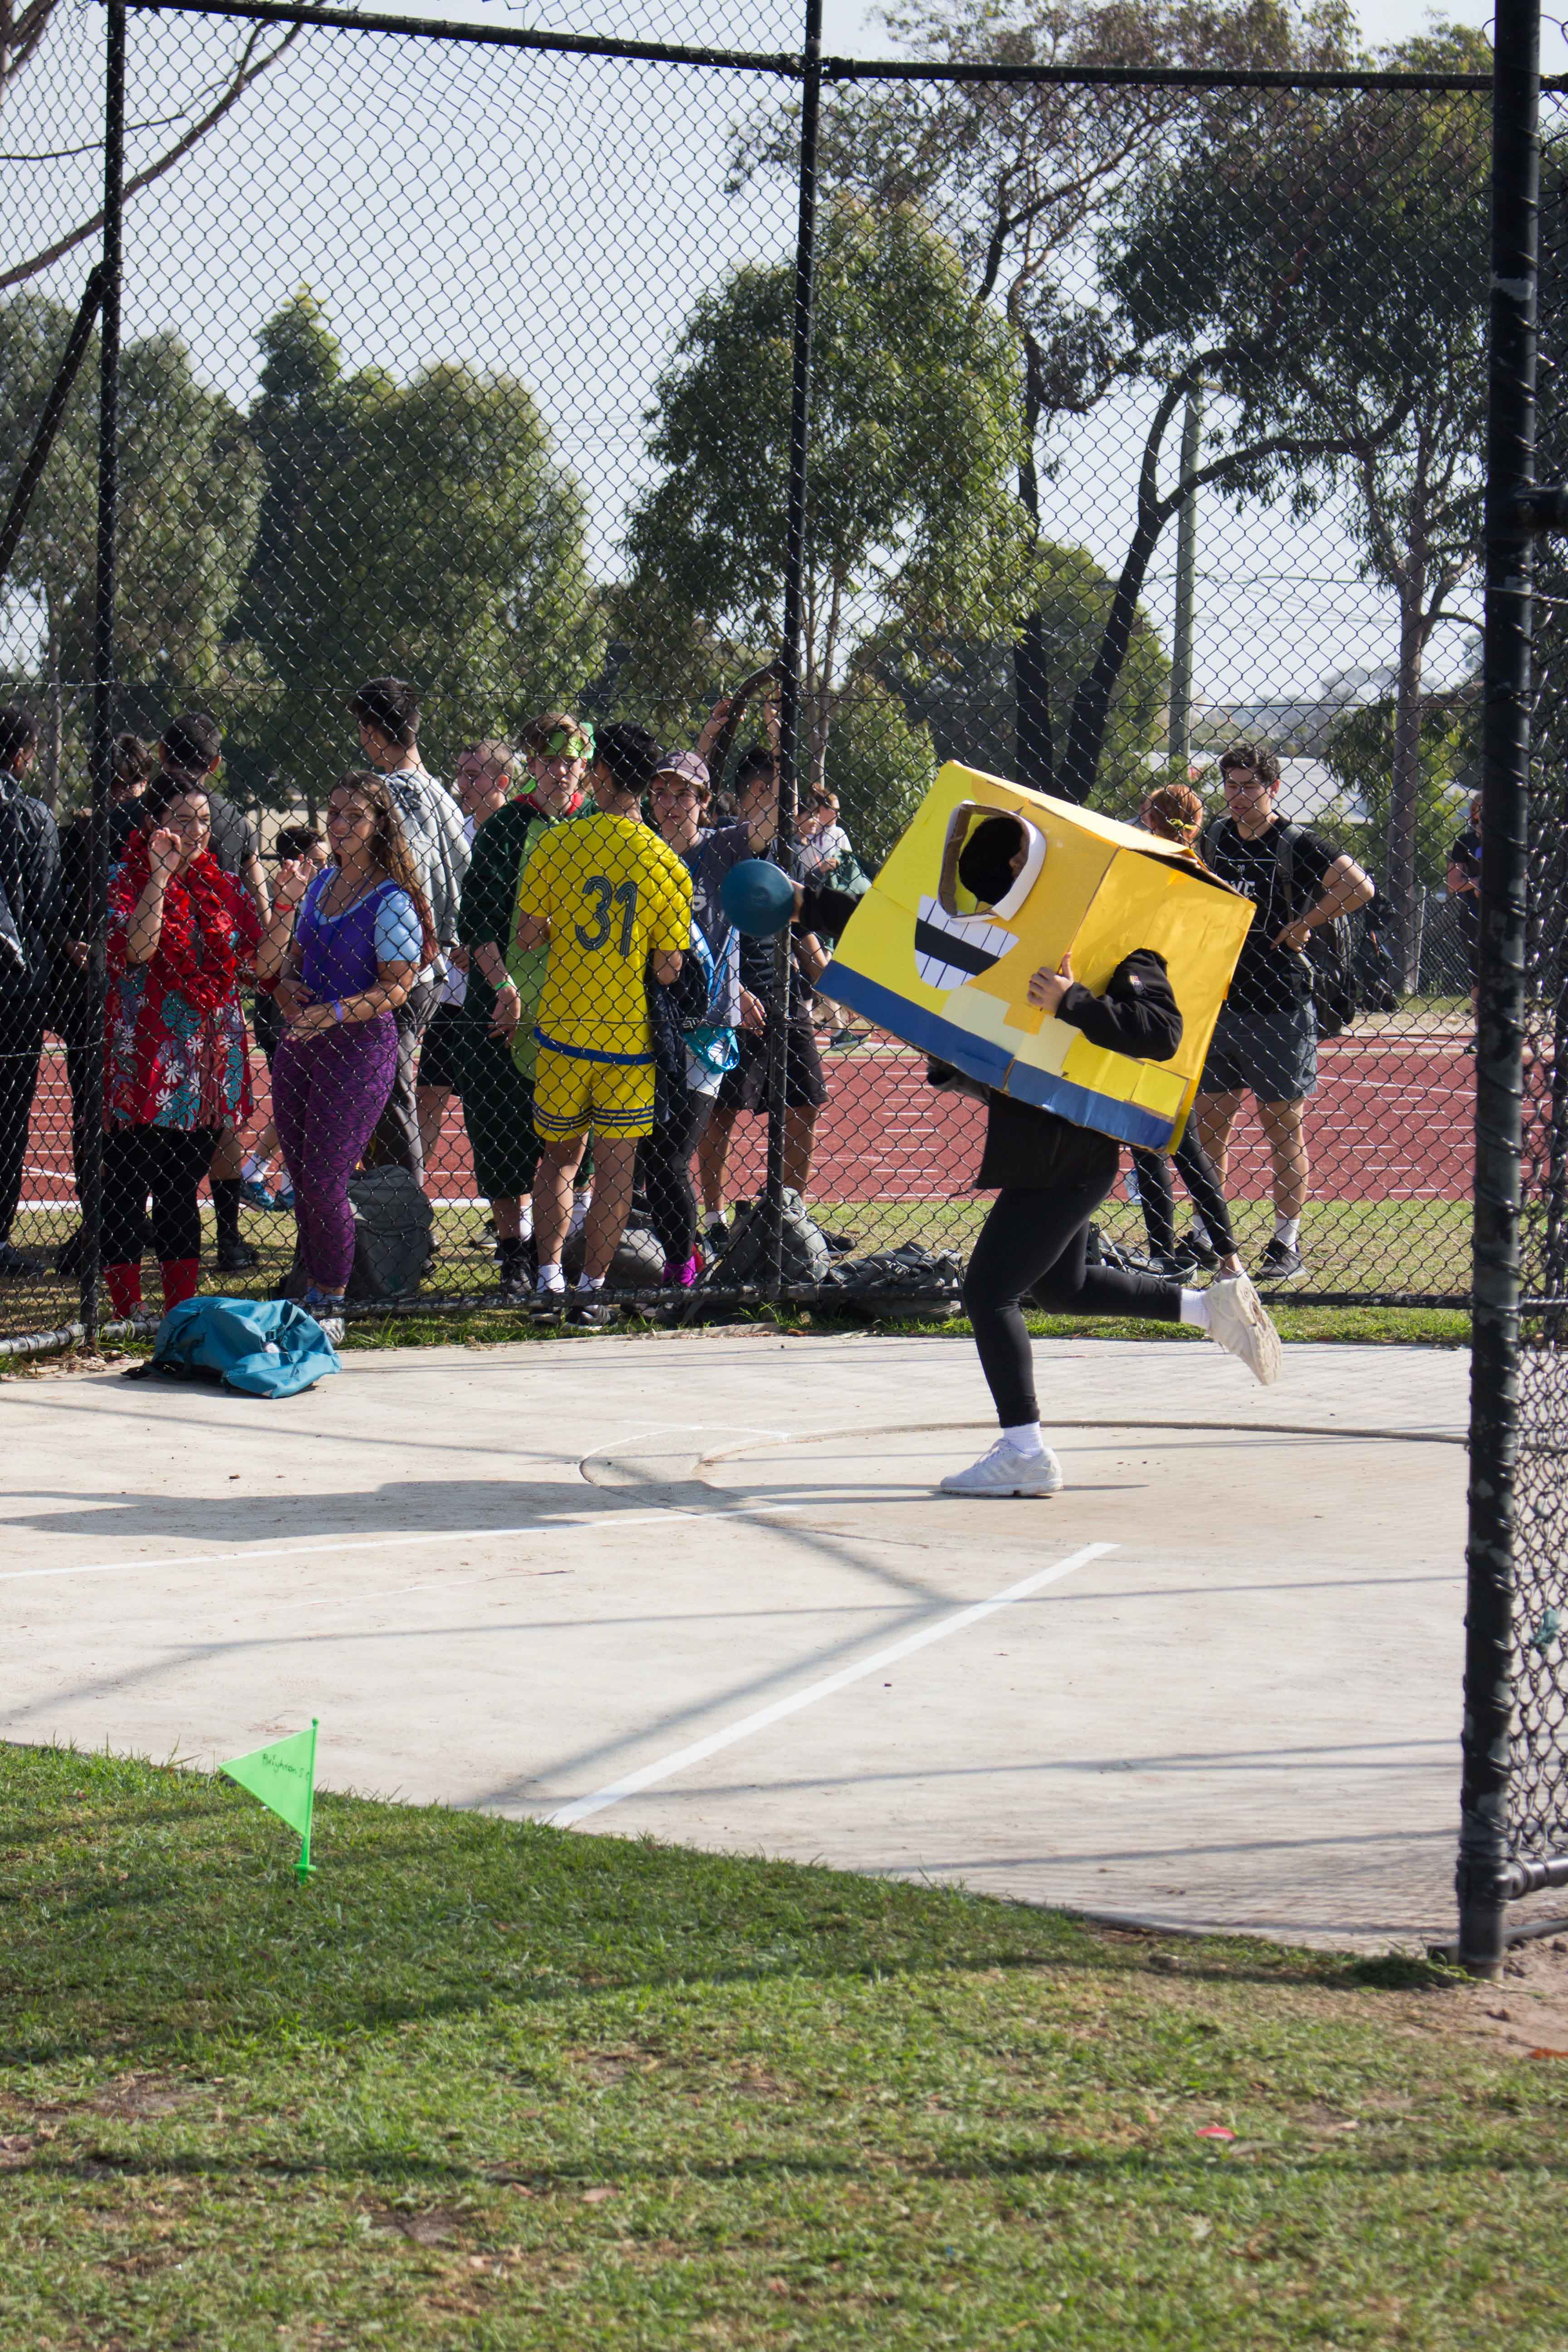 Just a minion throwing a discus...